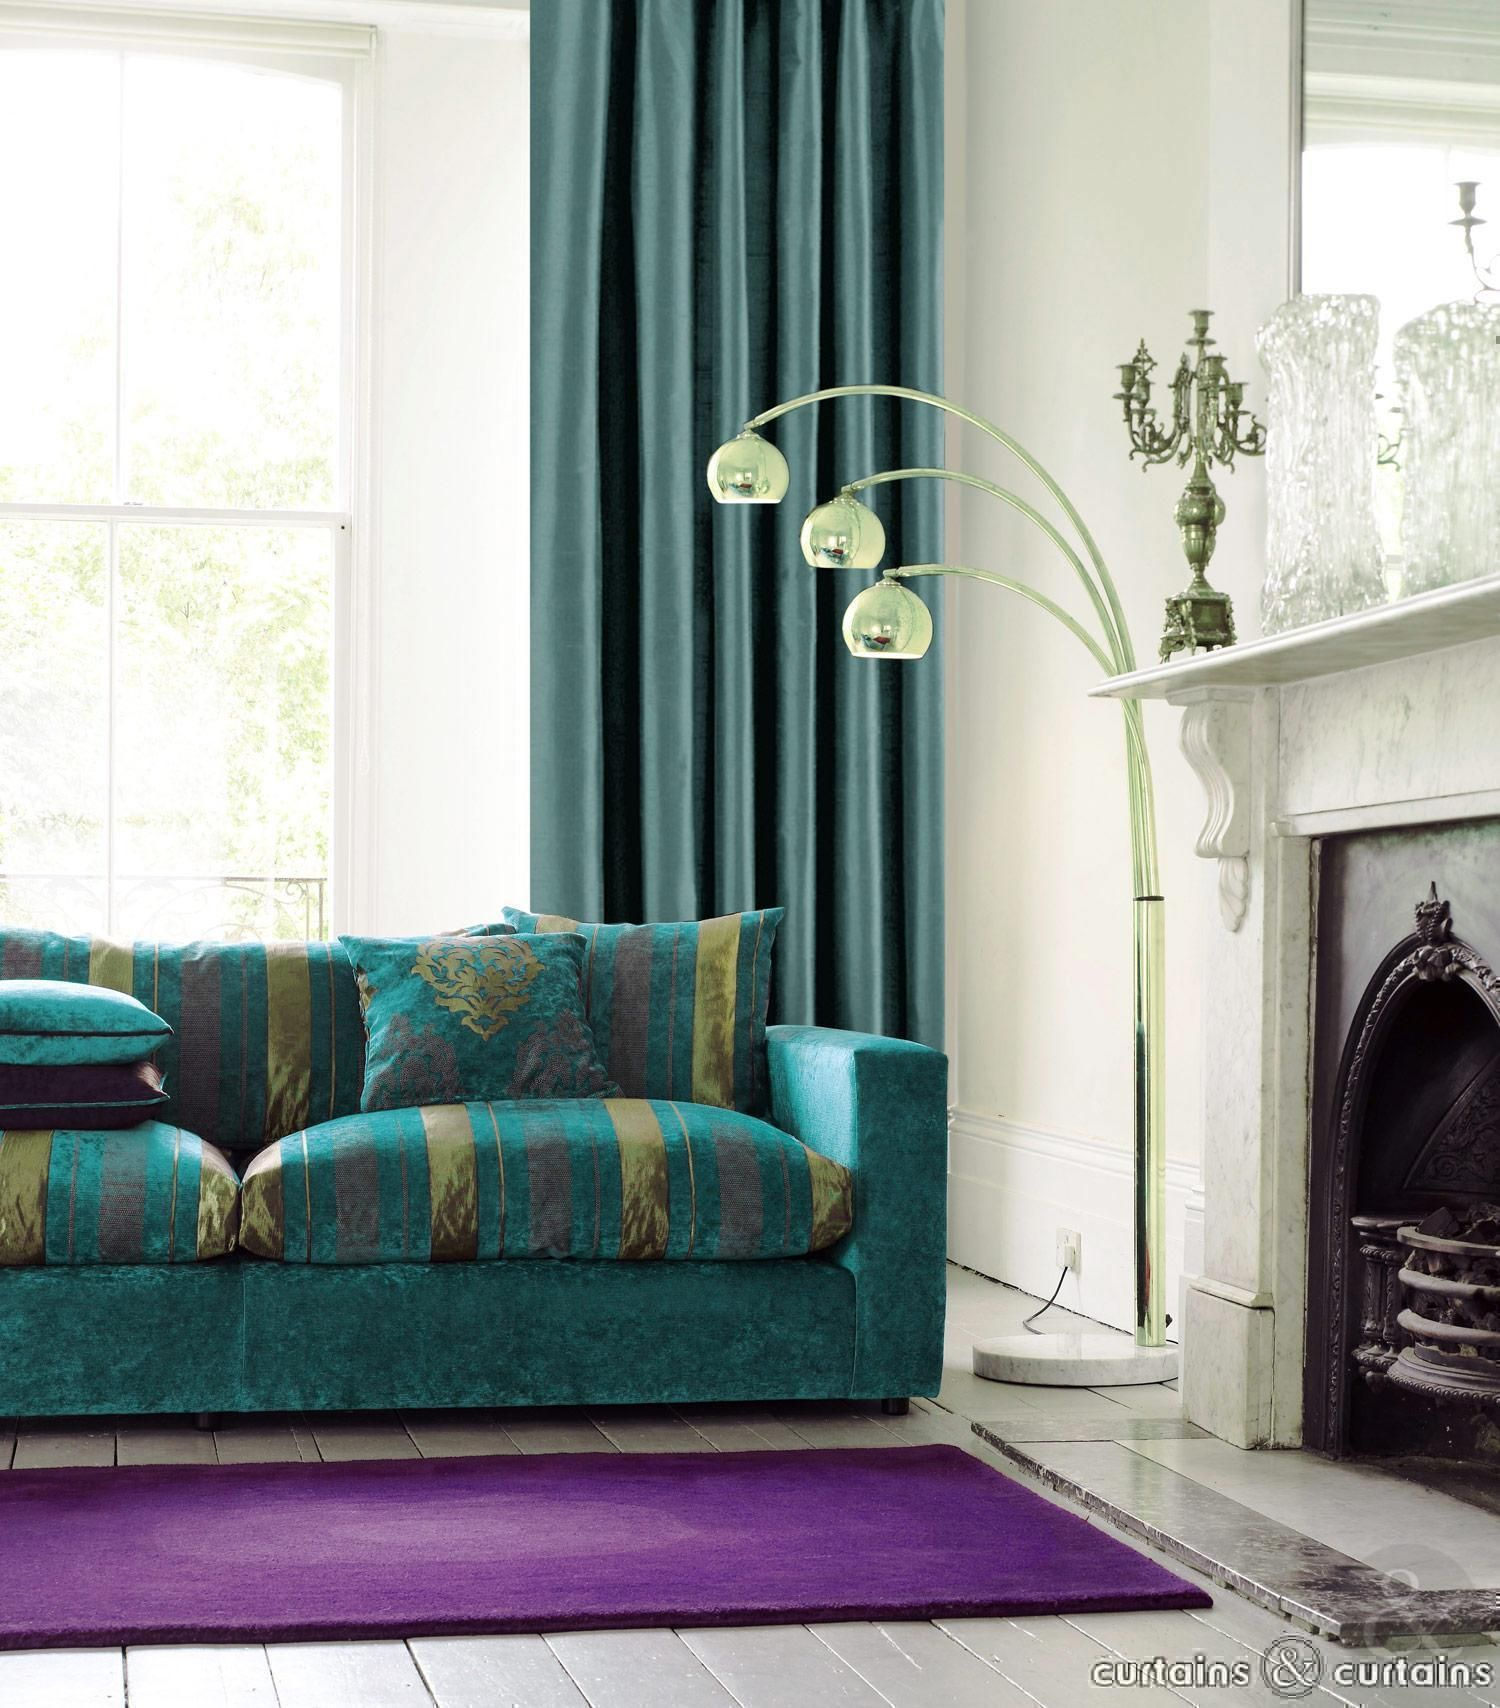 Superb Classy Teal Sliding Curtain Windows Also Cool Turquoise Living Room Sofas  Added Modern Stands Lamps As Well As White Fireplace In Modern Turquoise  Living ... Good Looking